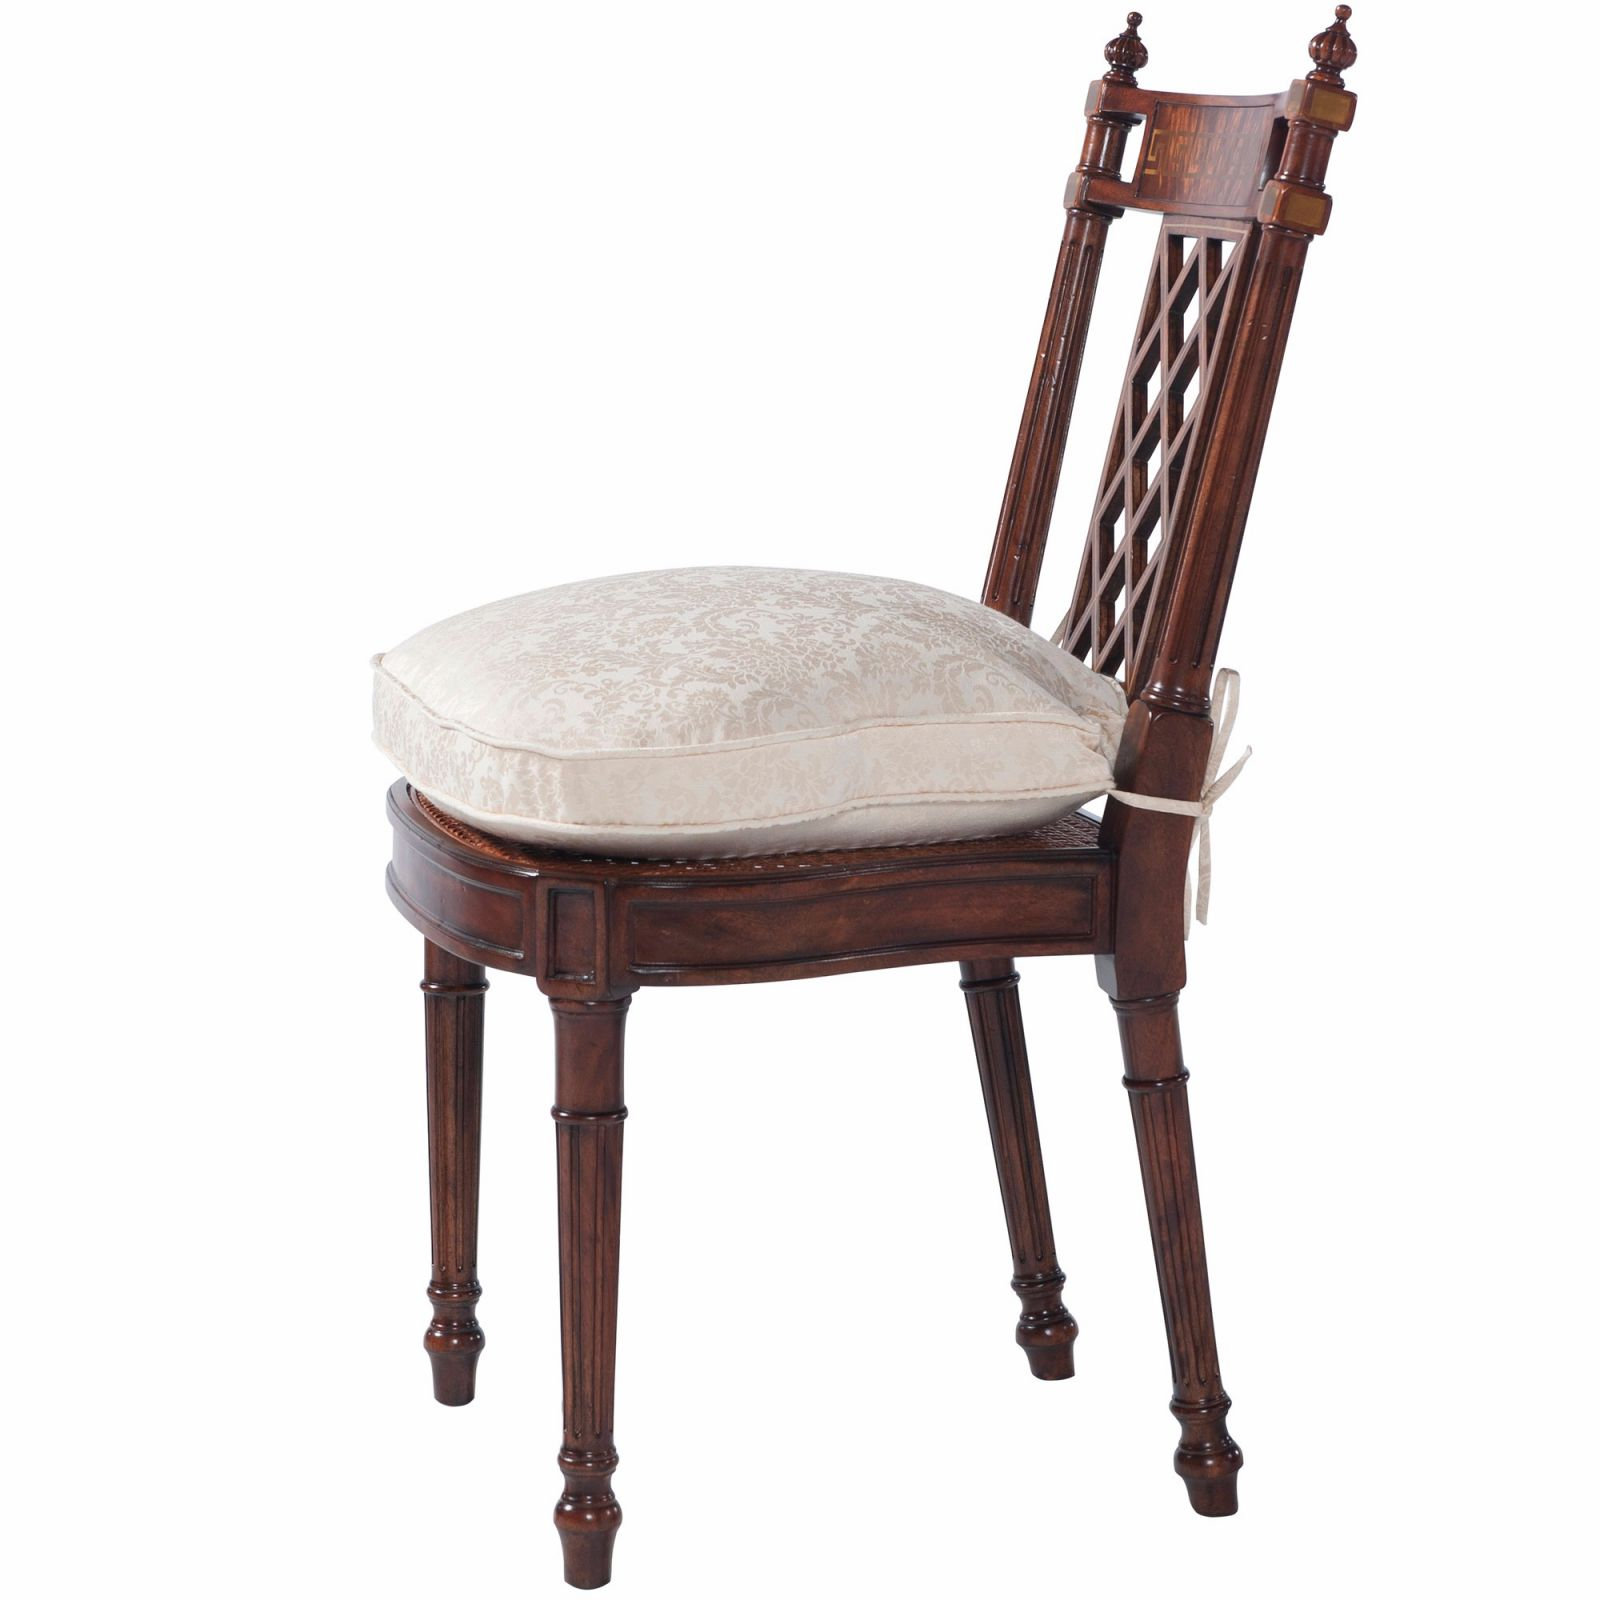 Lattice backed dining chair with greek key inlay inspired by a Thomas Sheraton Original